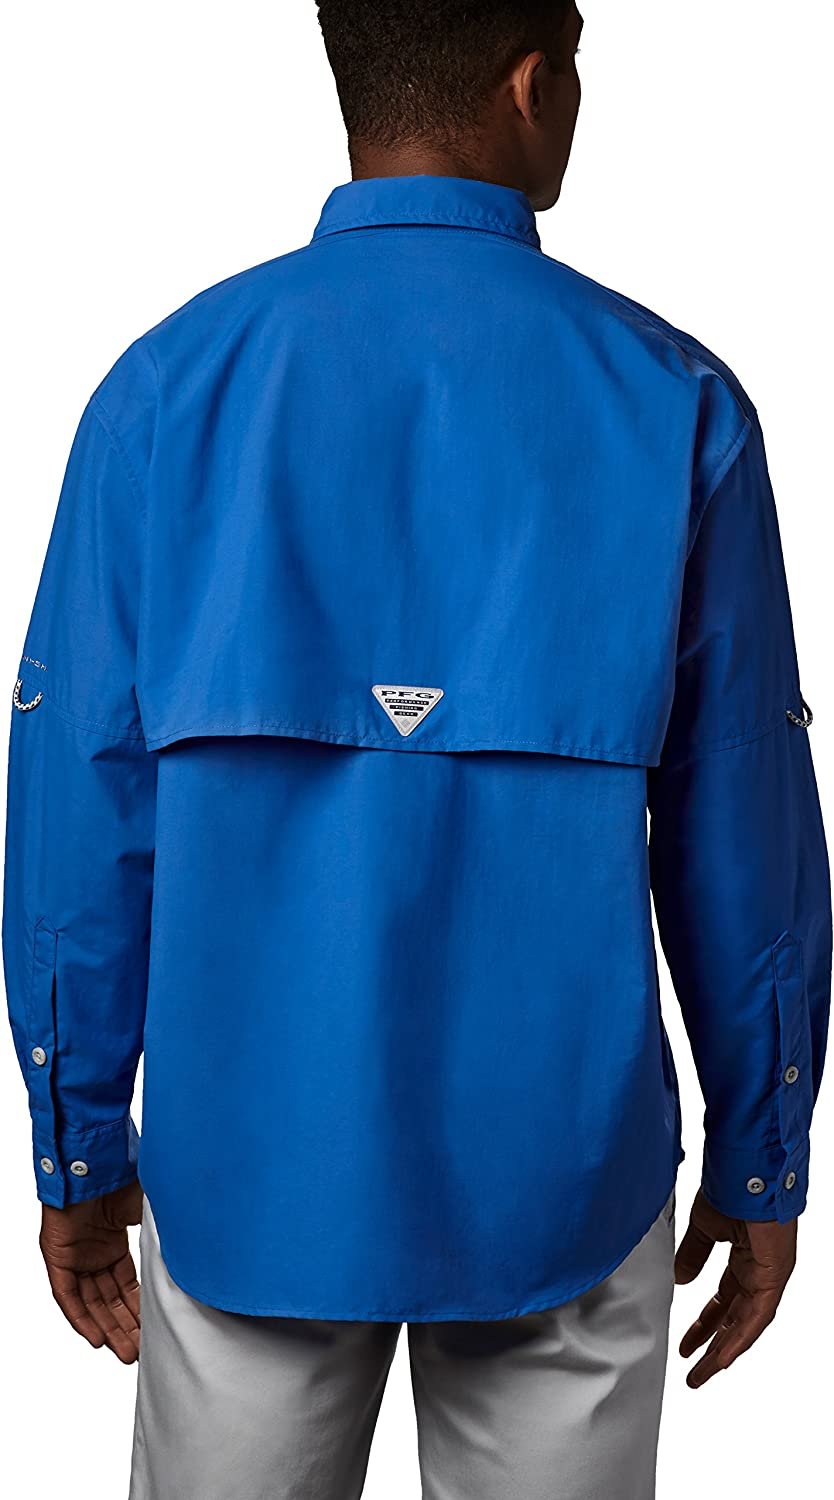 Columbia Bahama Ii Long Sleeve Shirt Vivid Blue